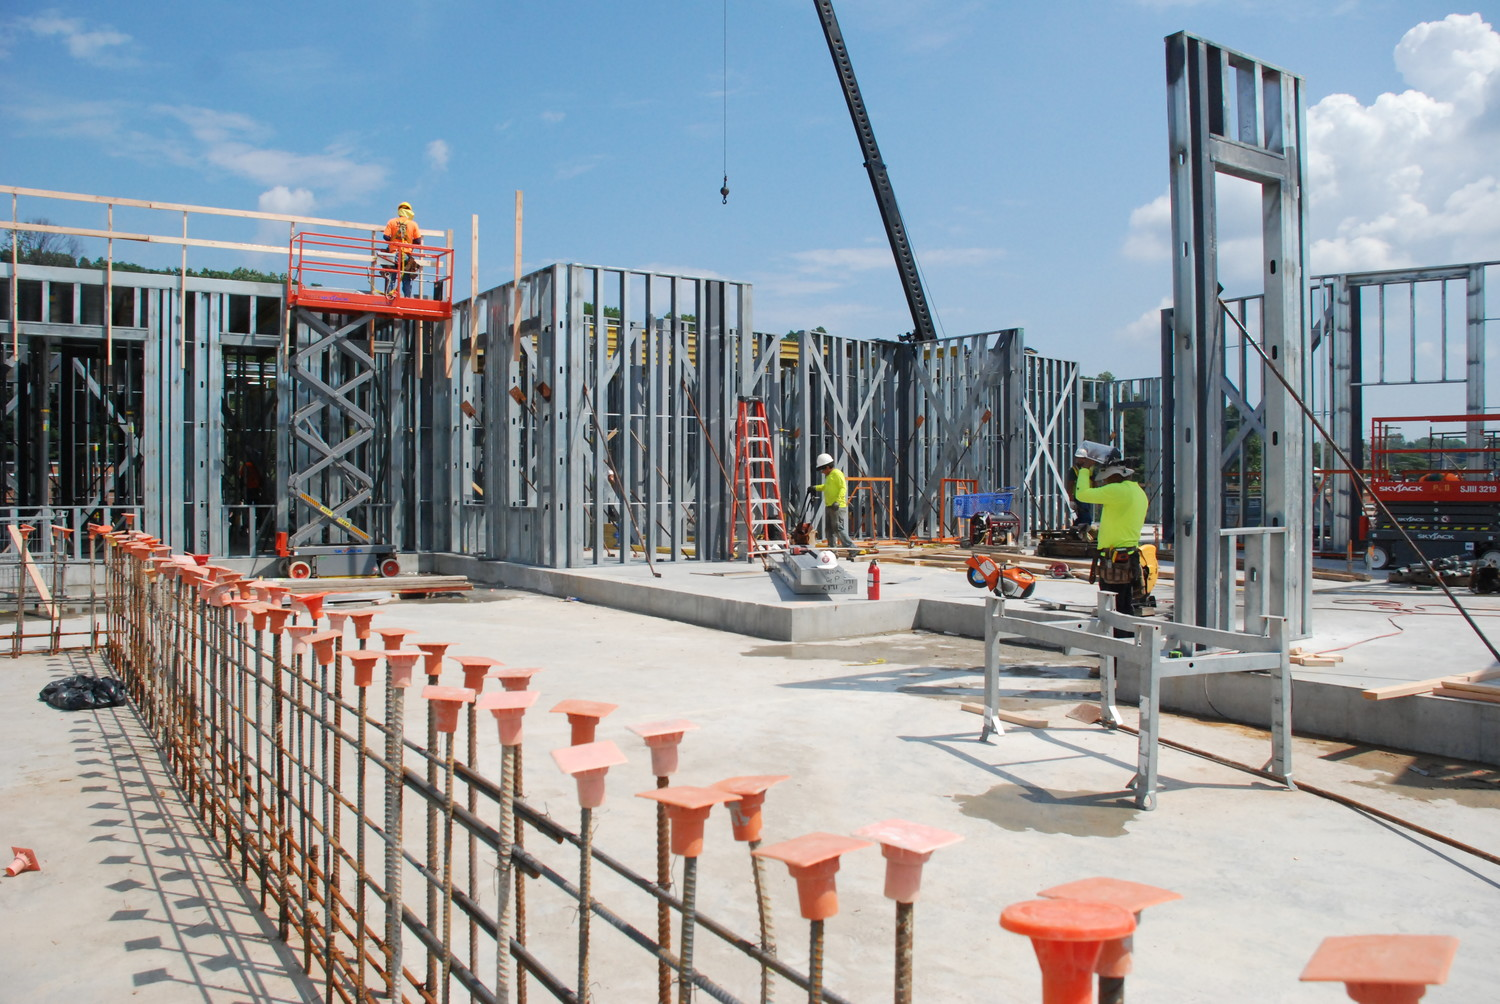 Laborers worked to erect what will eventually be the walls of the Beacon, a residential building set to be completed before 2020.